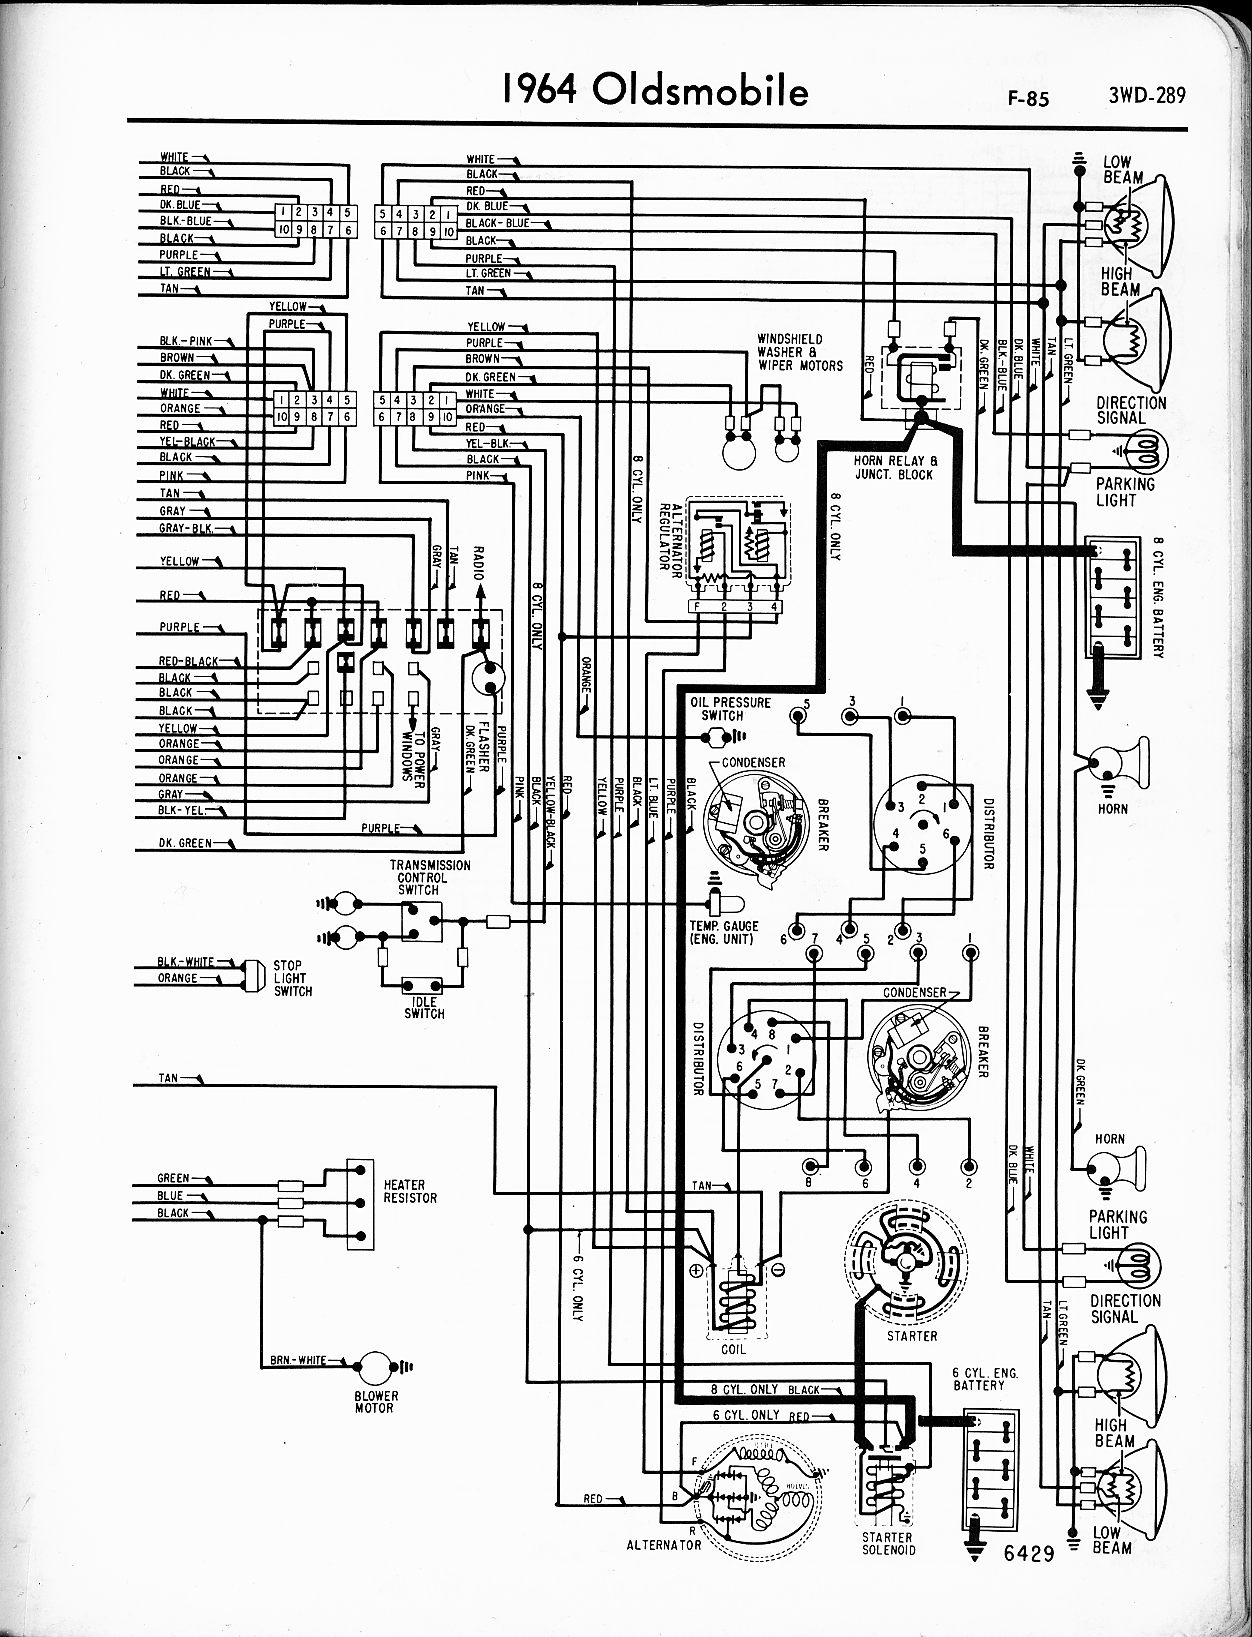 1956 oldsmobile 88 wiring diagram schematic smart wiring diagrams u2022 rh emgsolutions co 2001 oldsmobile silhouette wiring diagram 2001 oldsmobile silhouette wiring diagram